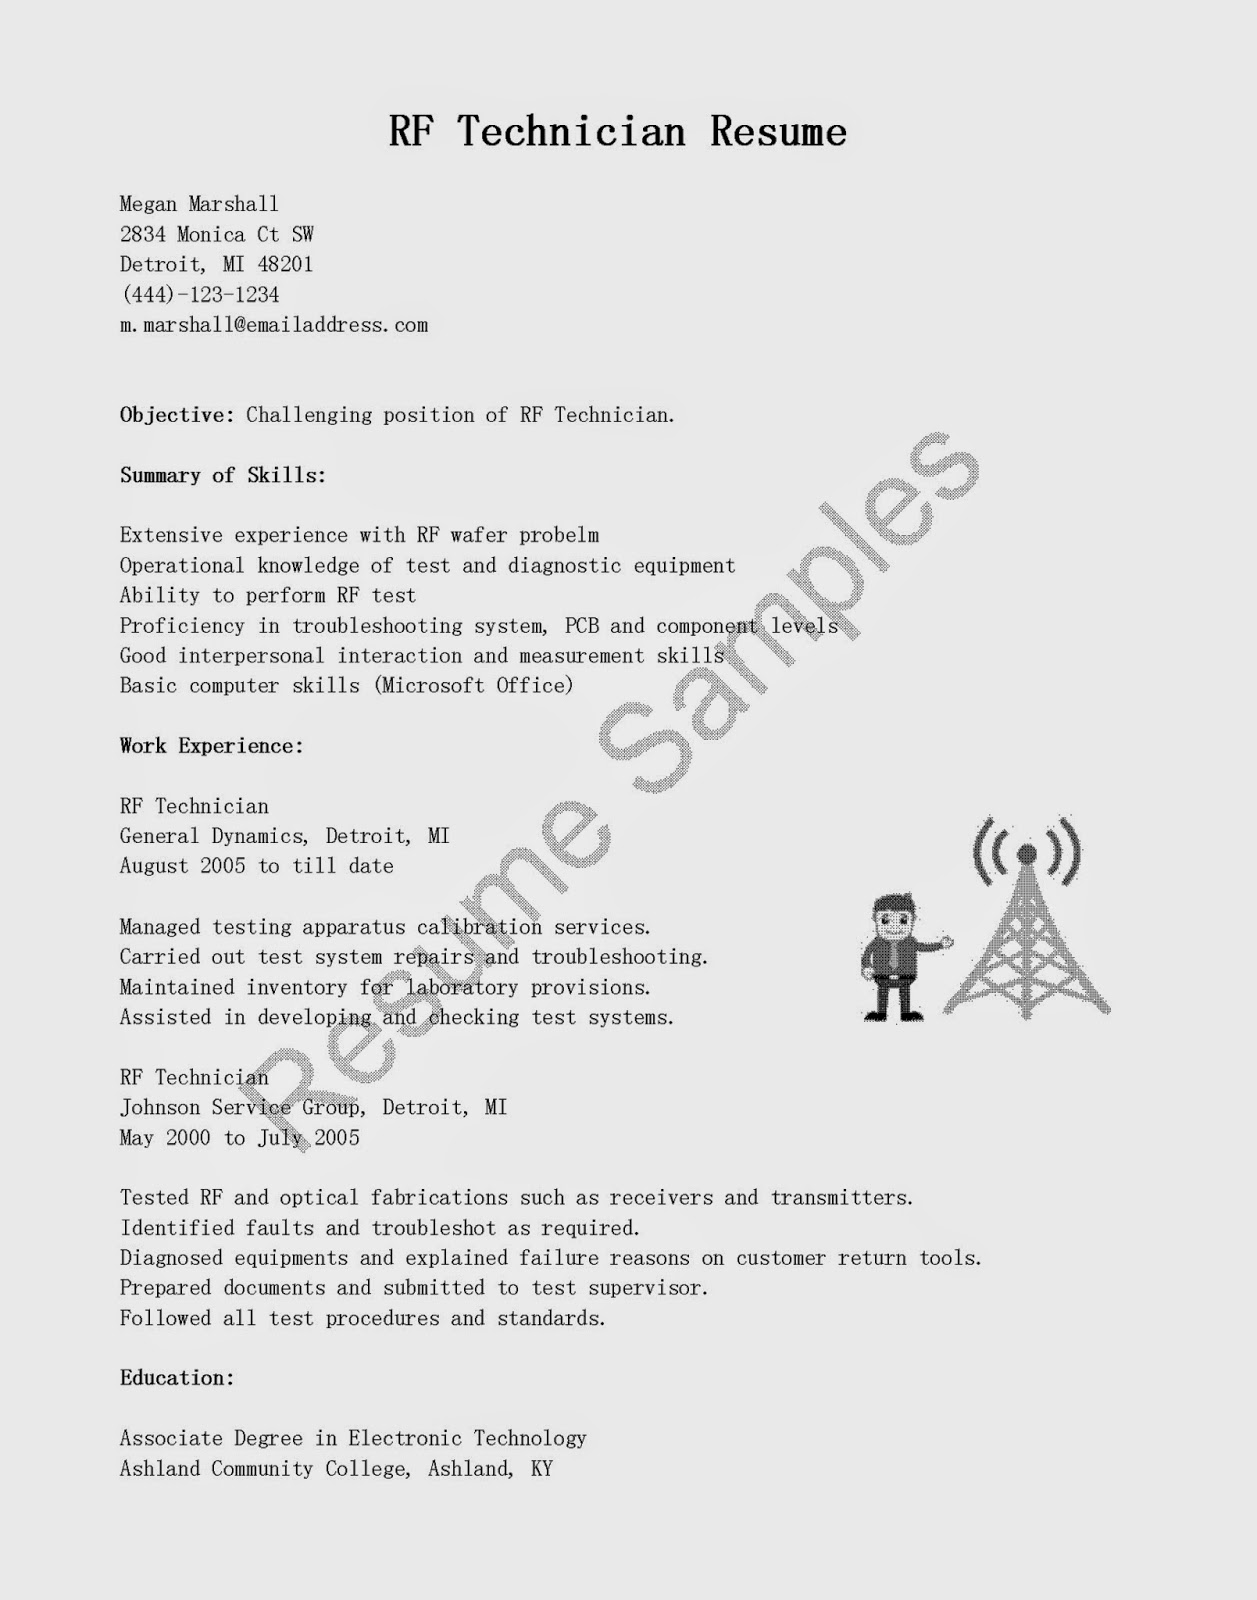 resume samples  rf technician resume sample